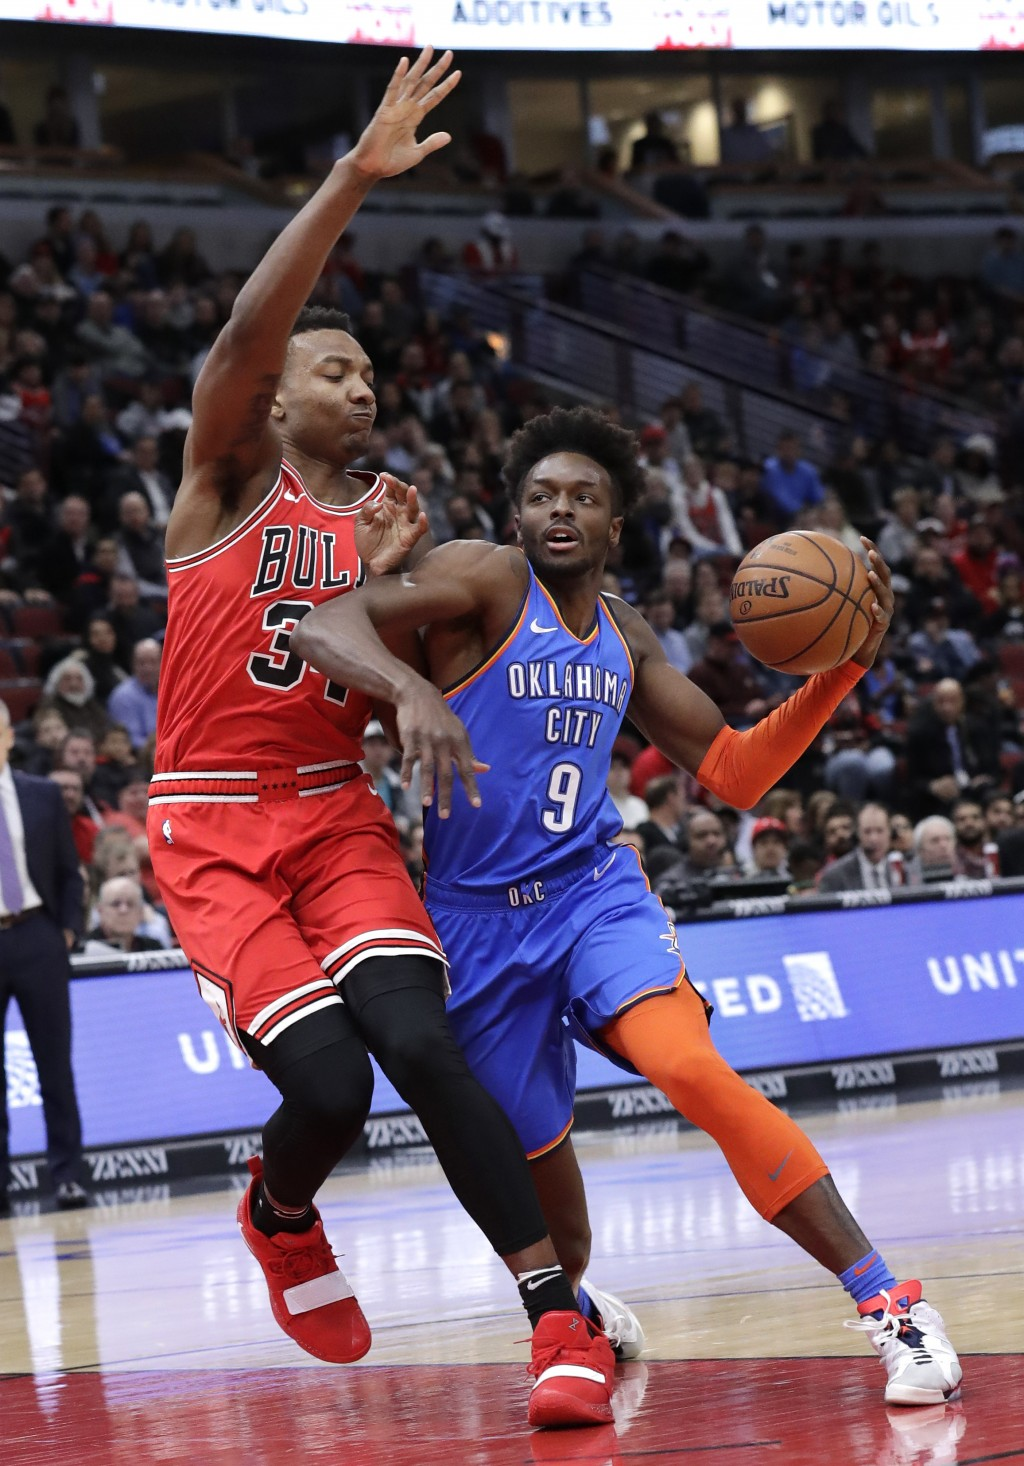 Oklahoma City Thunder forward Jeramy Grant, right, drives as Chicago Bulls center Wendell Carter Jr. defends during the first half of an NBA basketbal